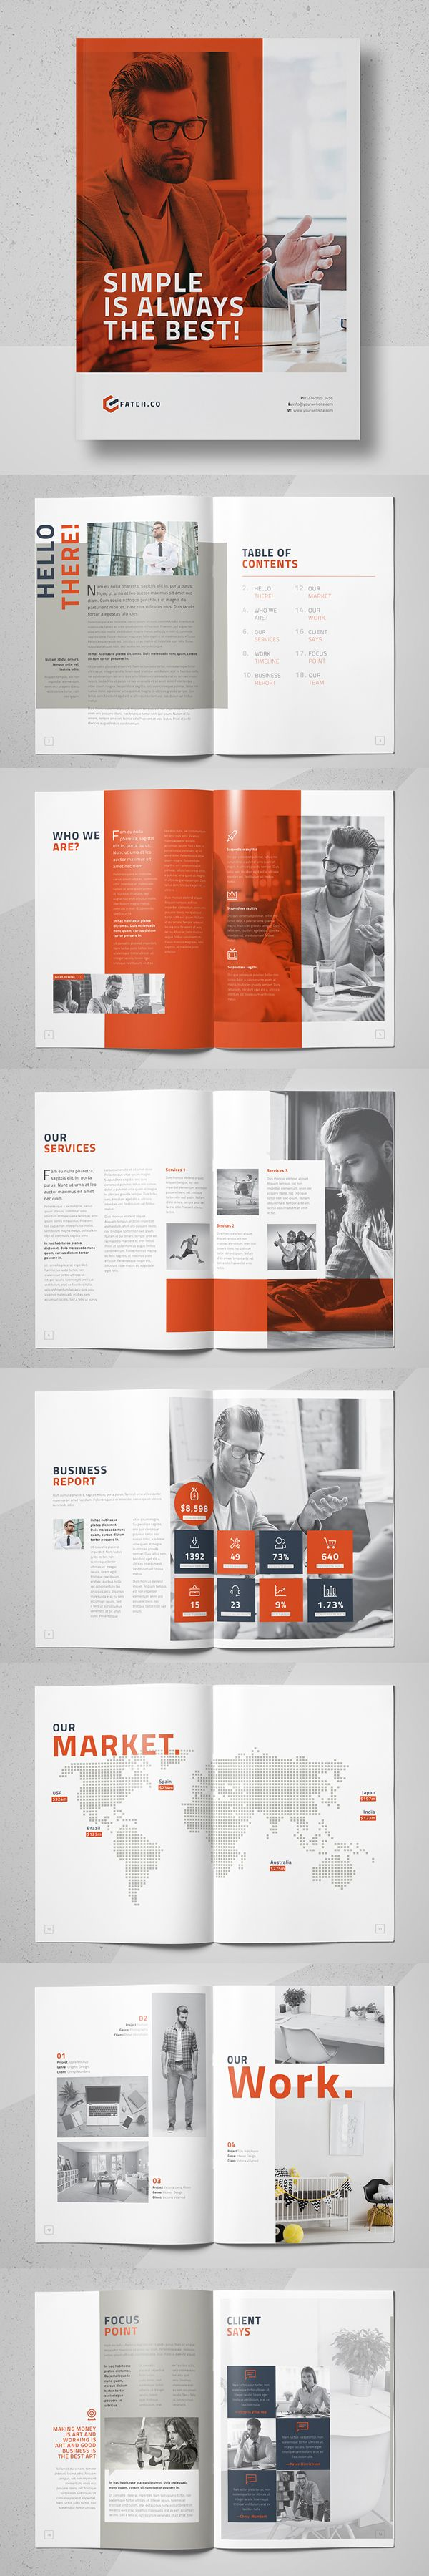 Equilux Brochure Template #annualreport #booklet #brochuredesign #brochuretemplates #fashioncatalog #catalogdesign